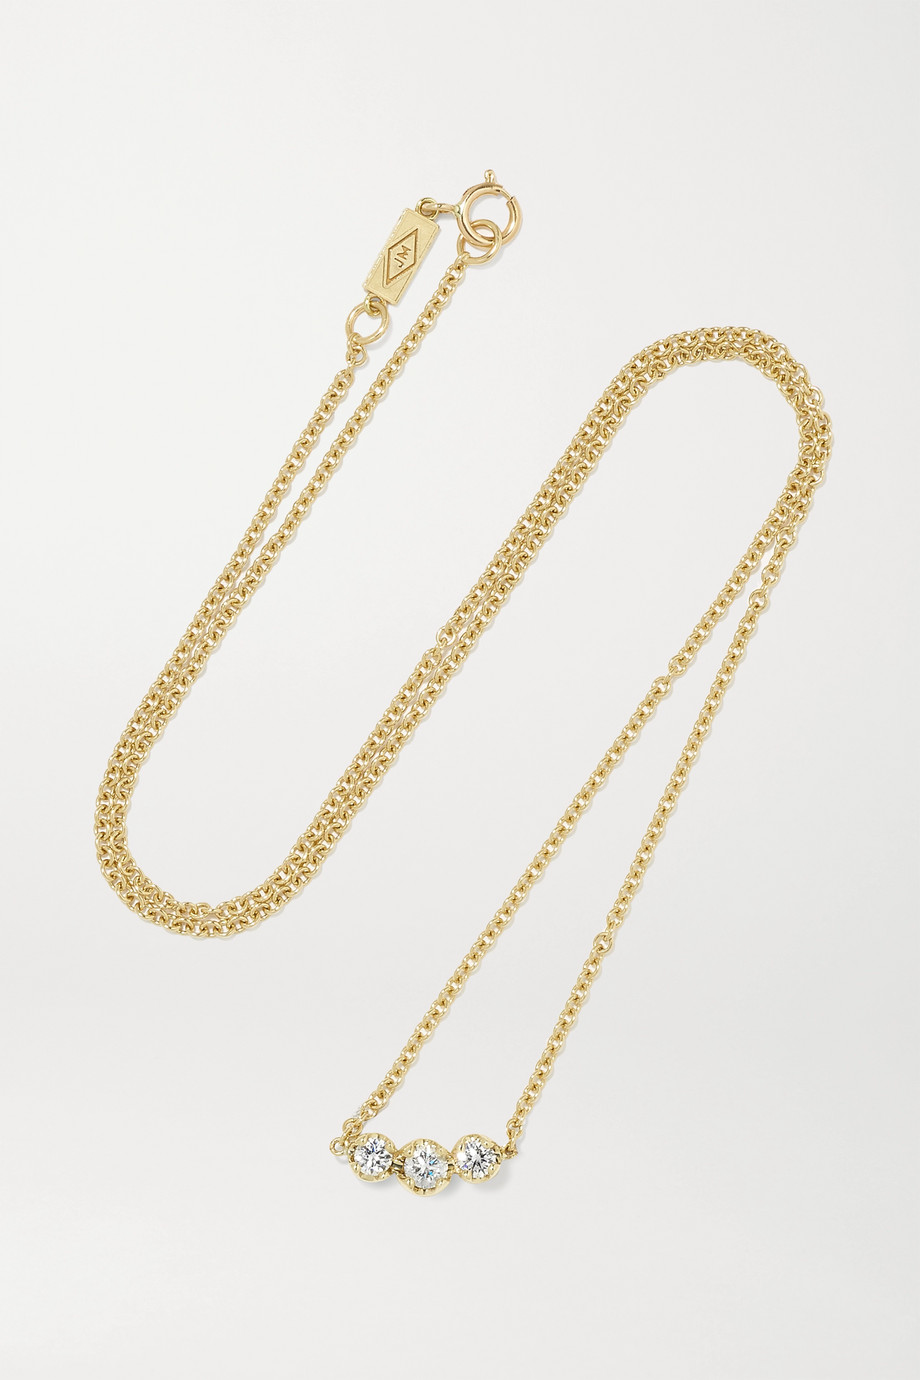 JENNIFER MEYER Illusion 18-karat gold diamond necklace